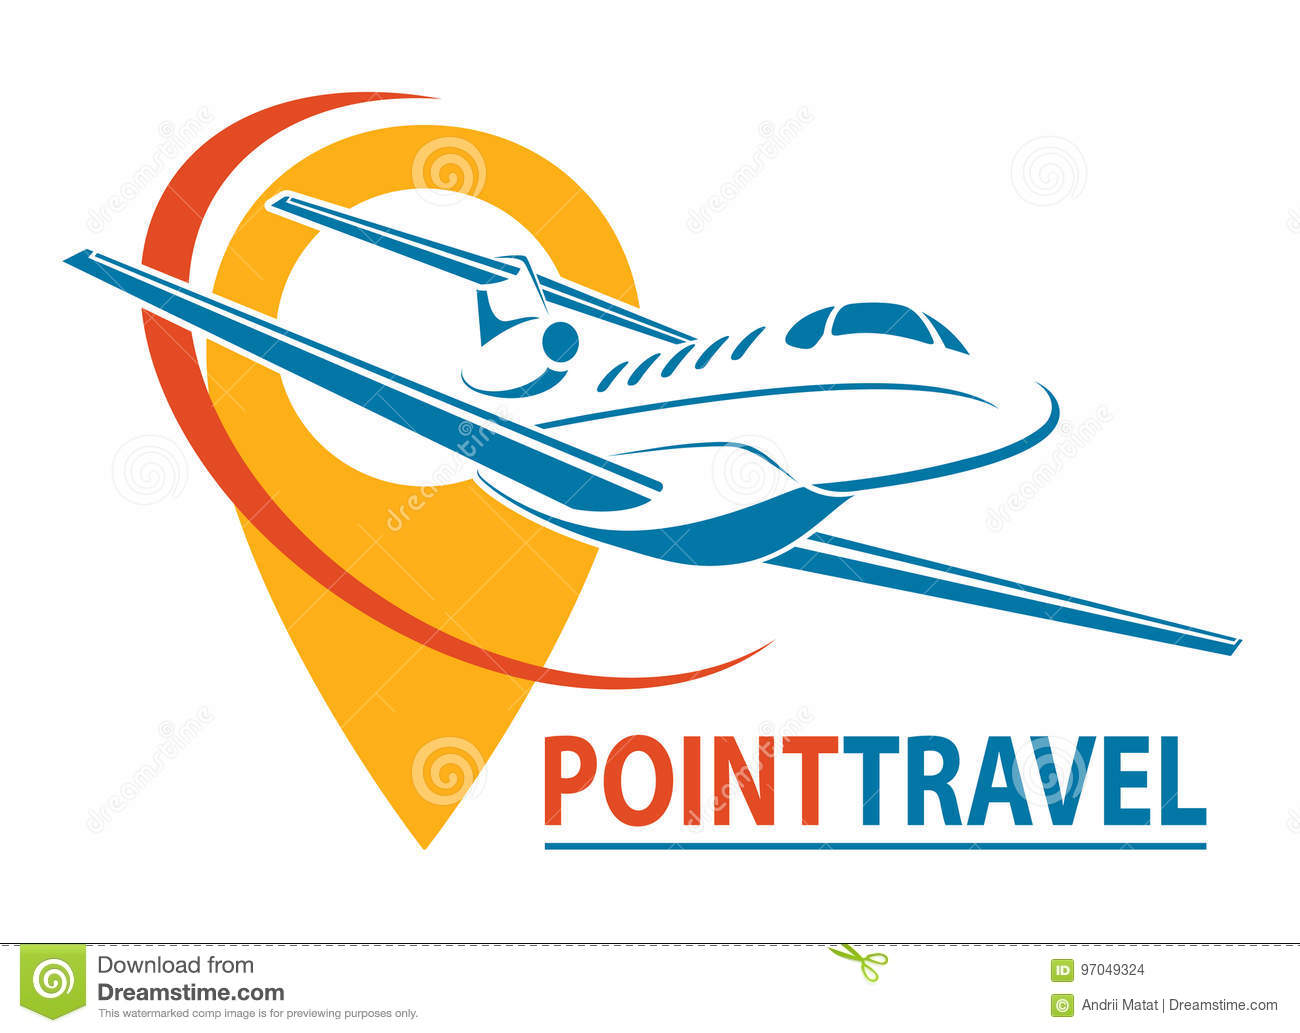 Plane Logo Design Creative Vector Icon With Plane And Ellipse Shape Vector Illustration Stock Vector Illustration Of Holiday Icon 97049324